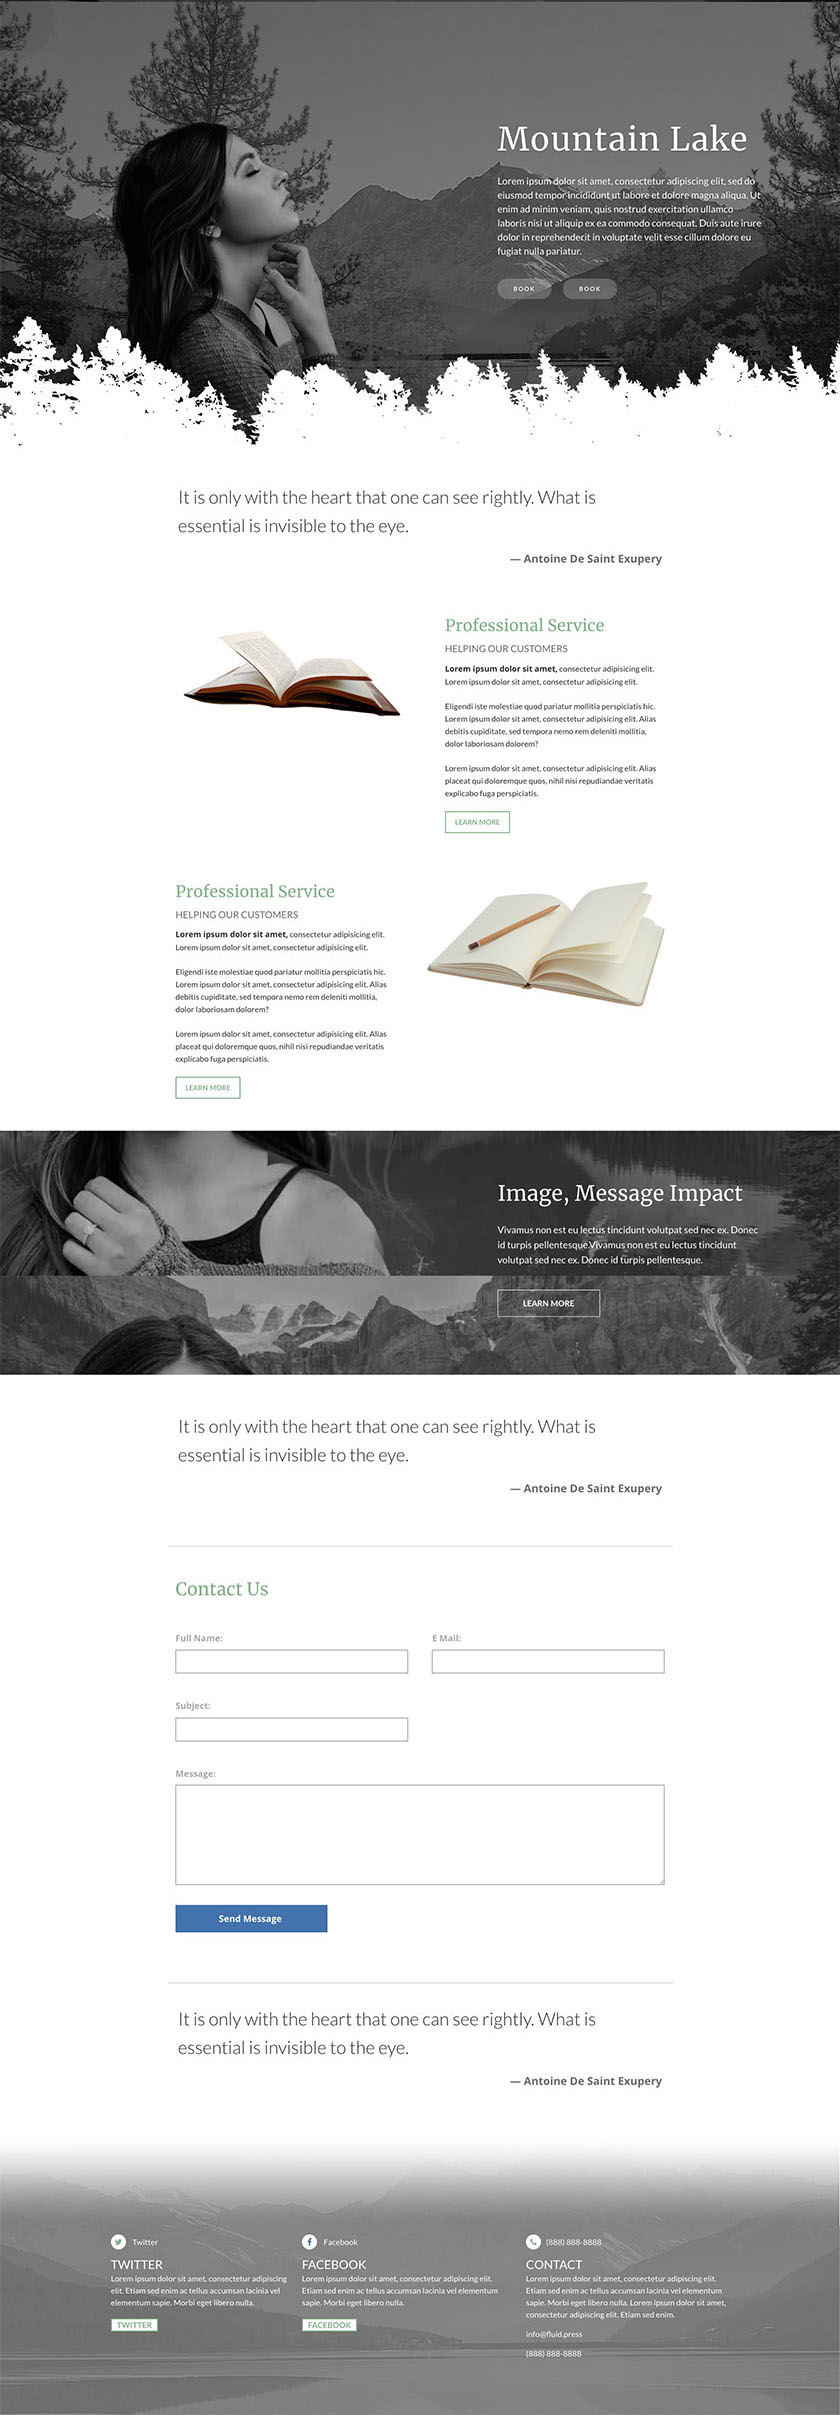 image of web template